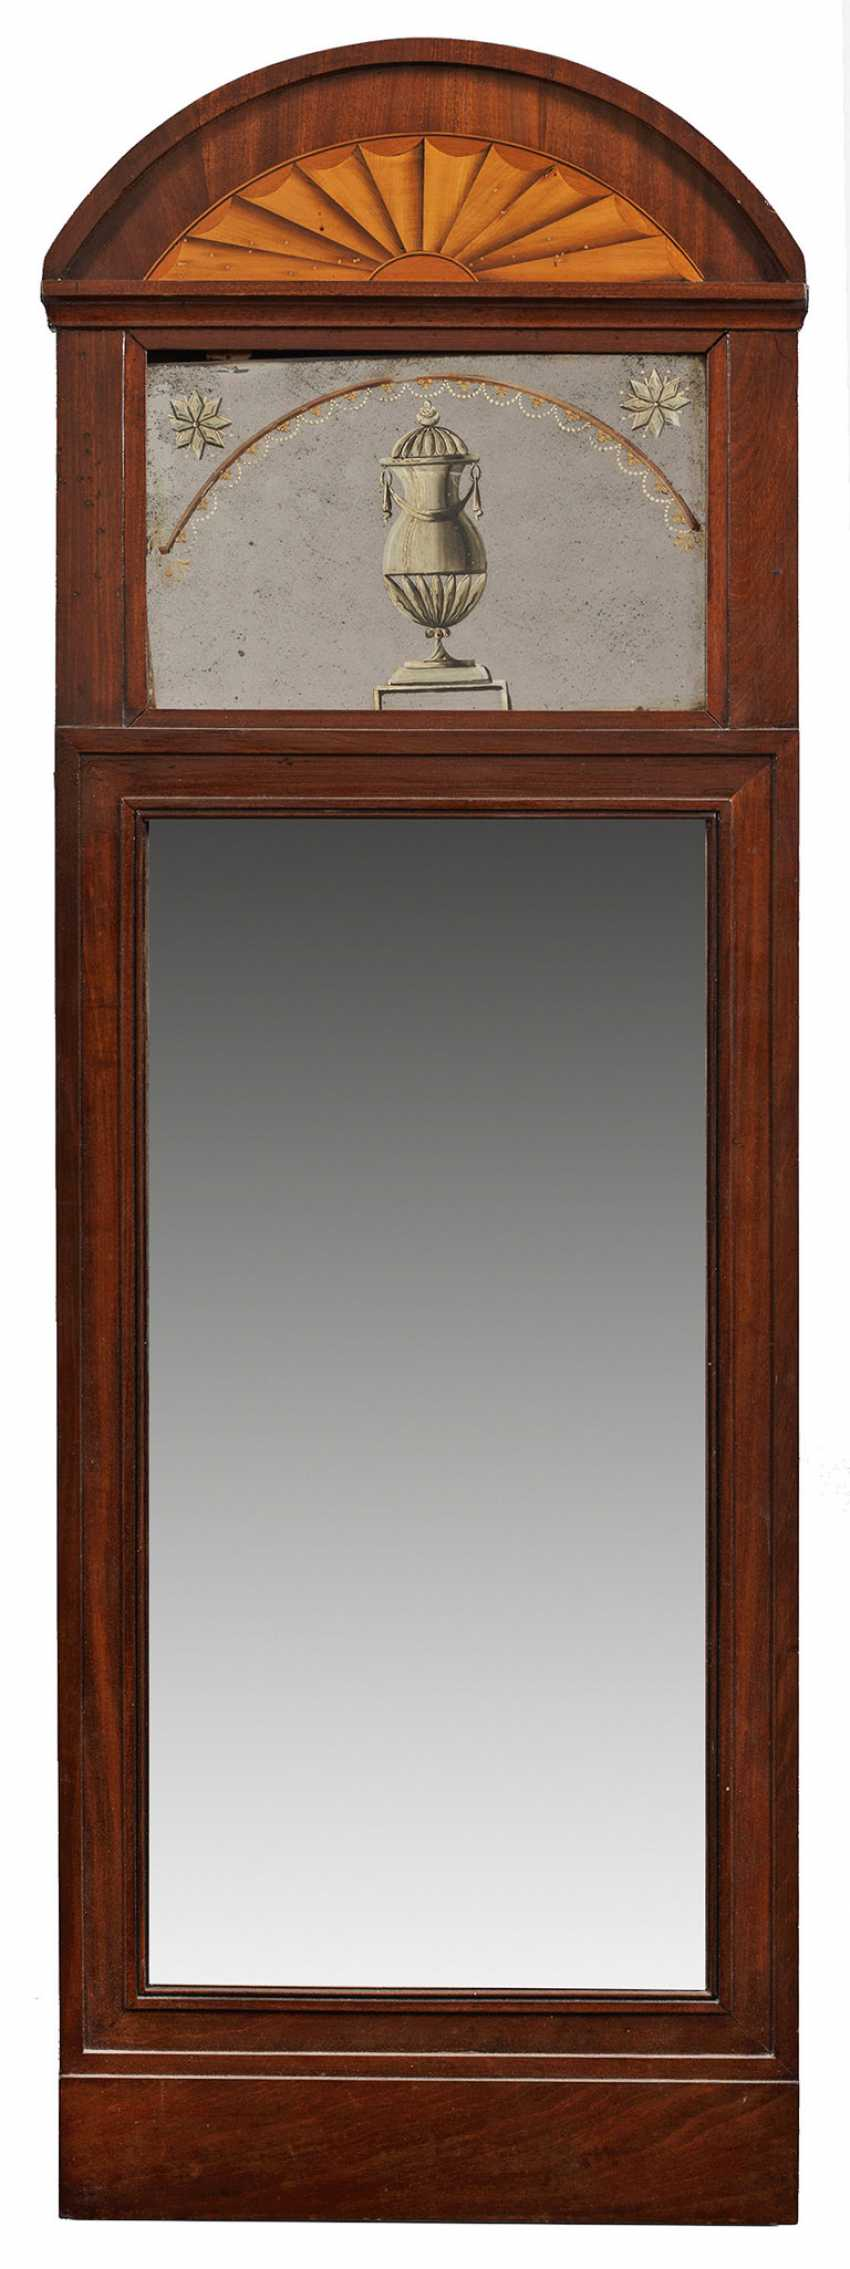 Biedermeier-Arrow Mirror - photo 1